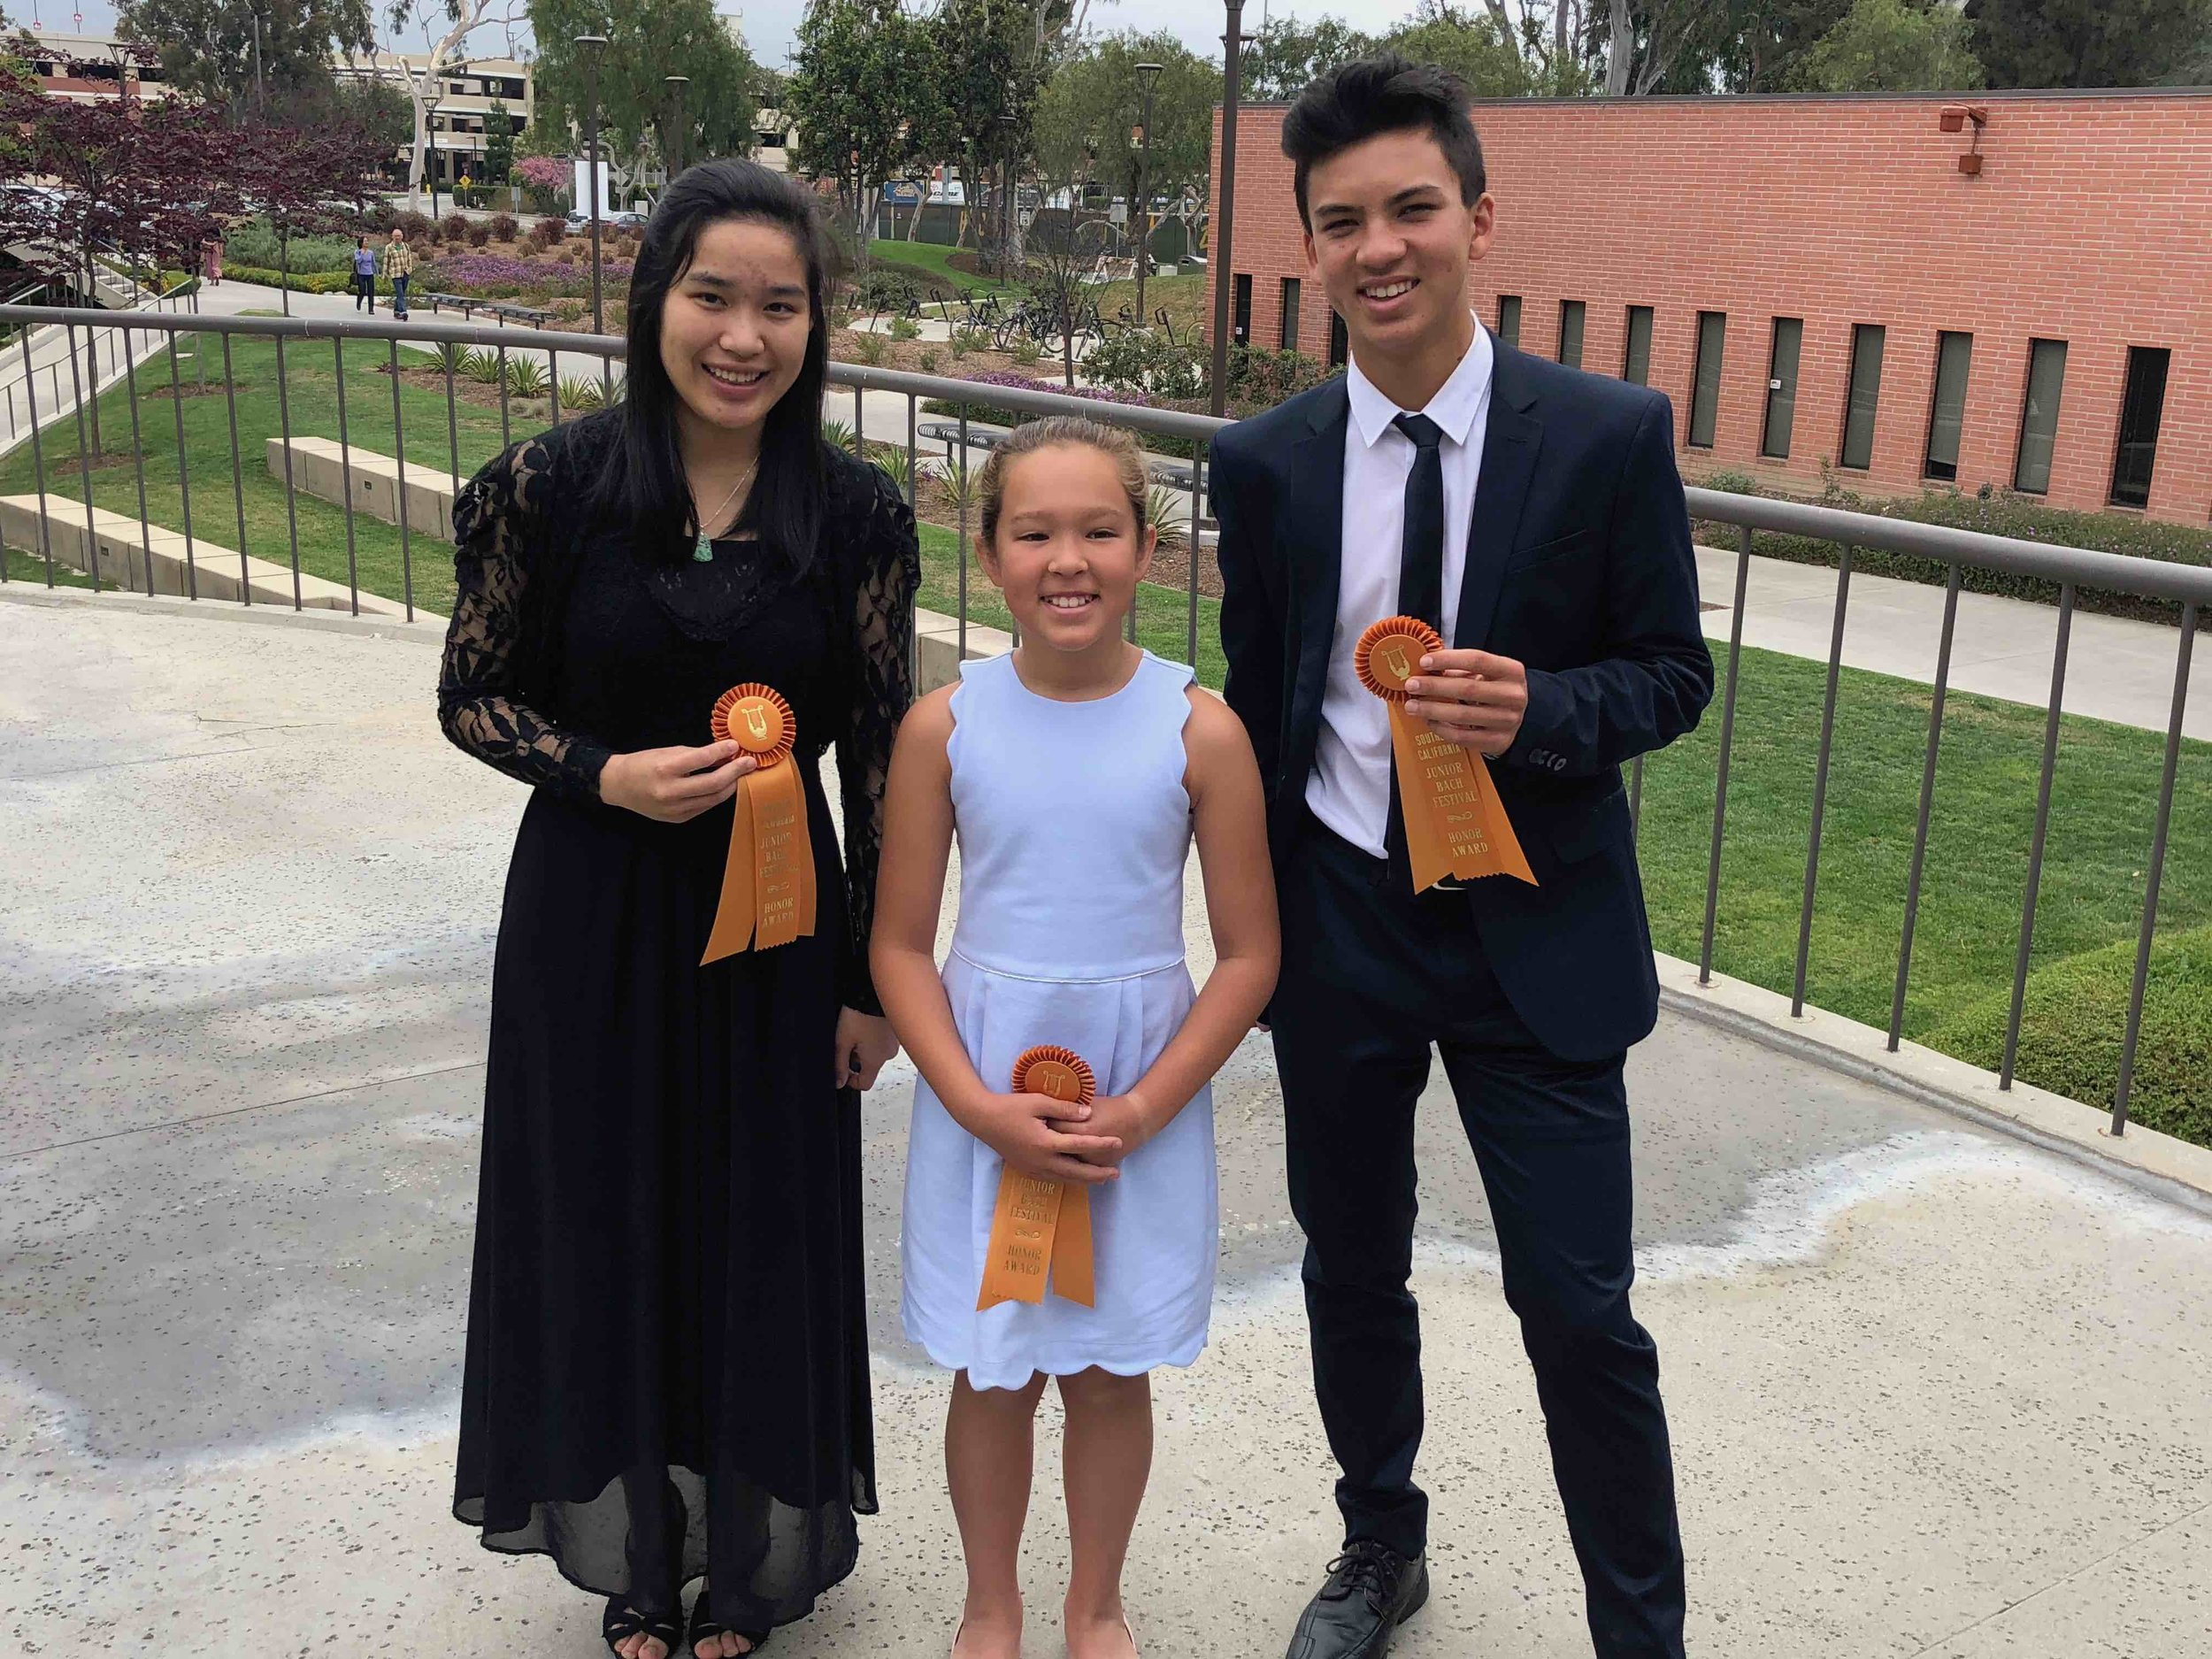 Bach Regionals 2018 - Congratulations to Irene L., Mikaela D., and Robert G., Bach South Bay Branch winners and Bach Regional Performers